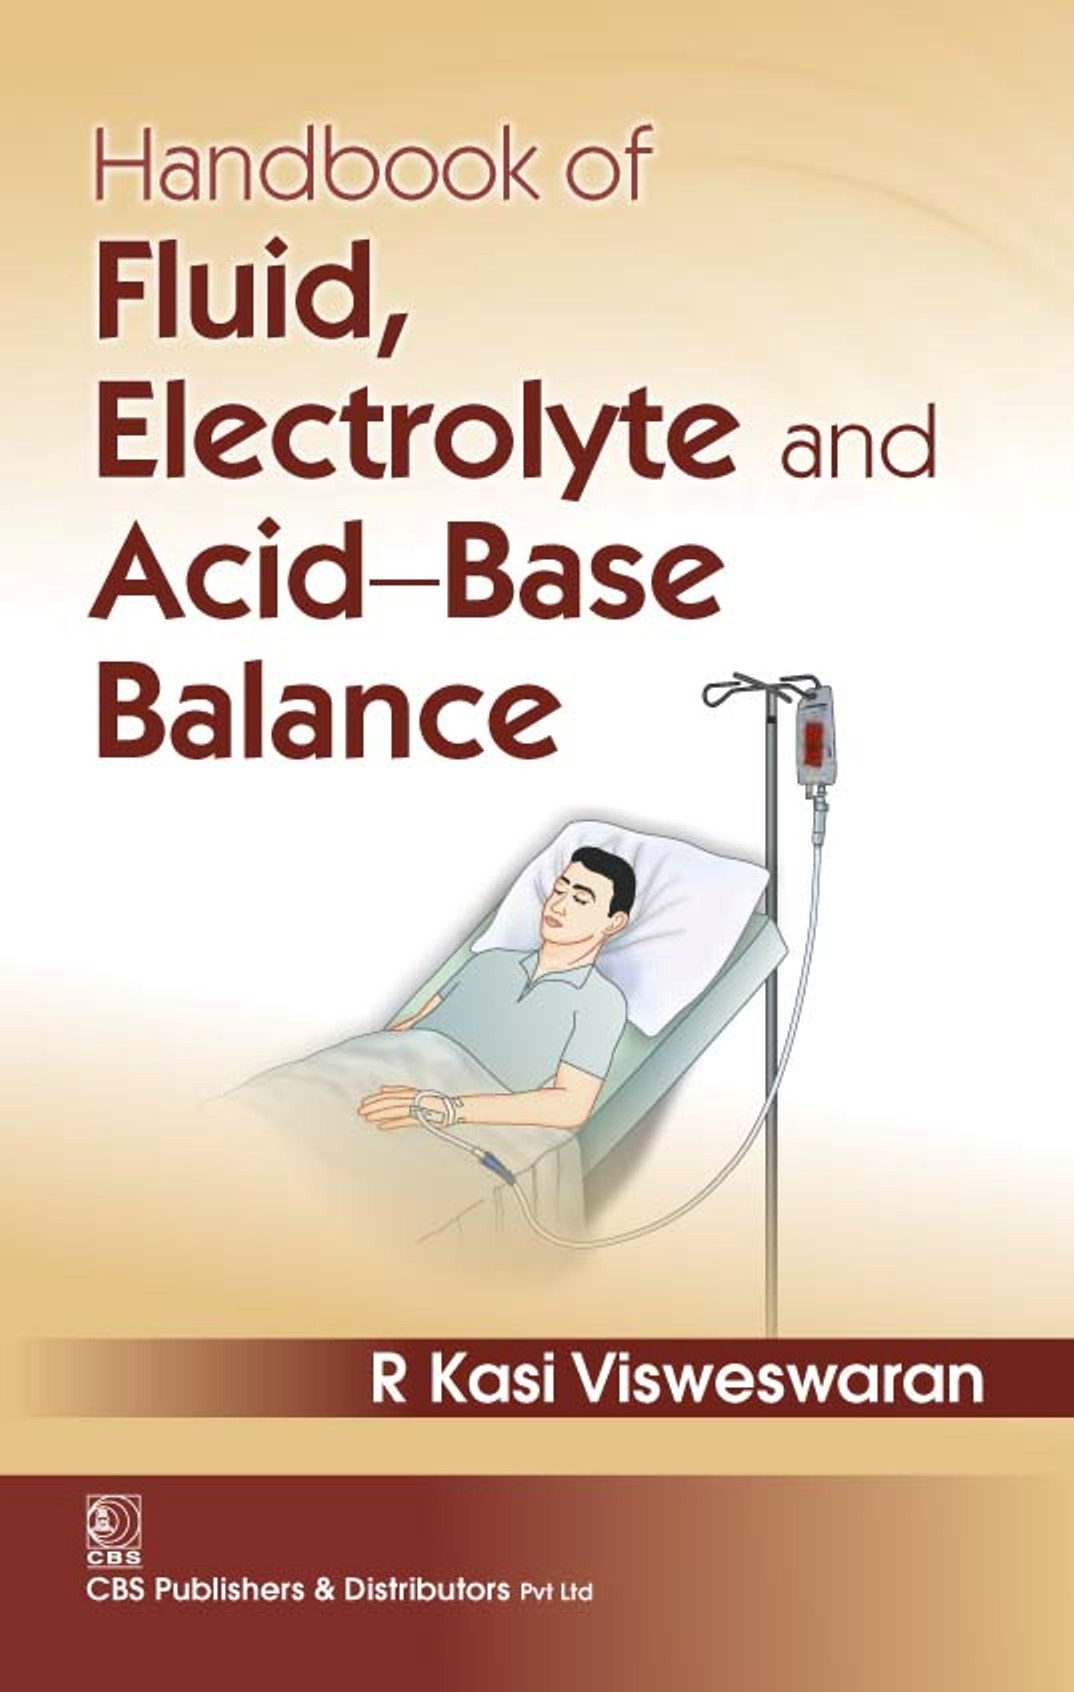 Handbook of Fluid, Electrolyte and Acid-Base Balance,1st reprint